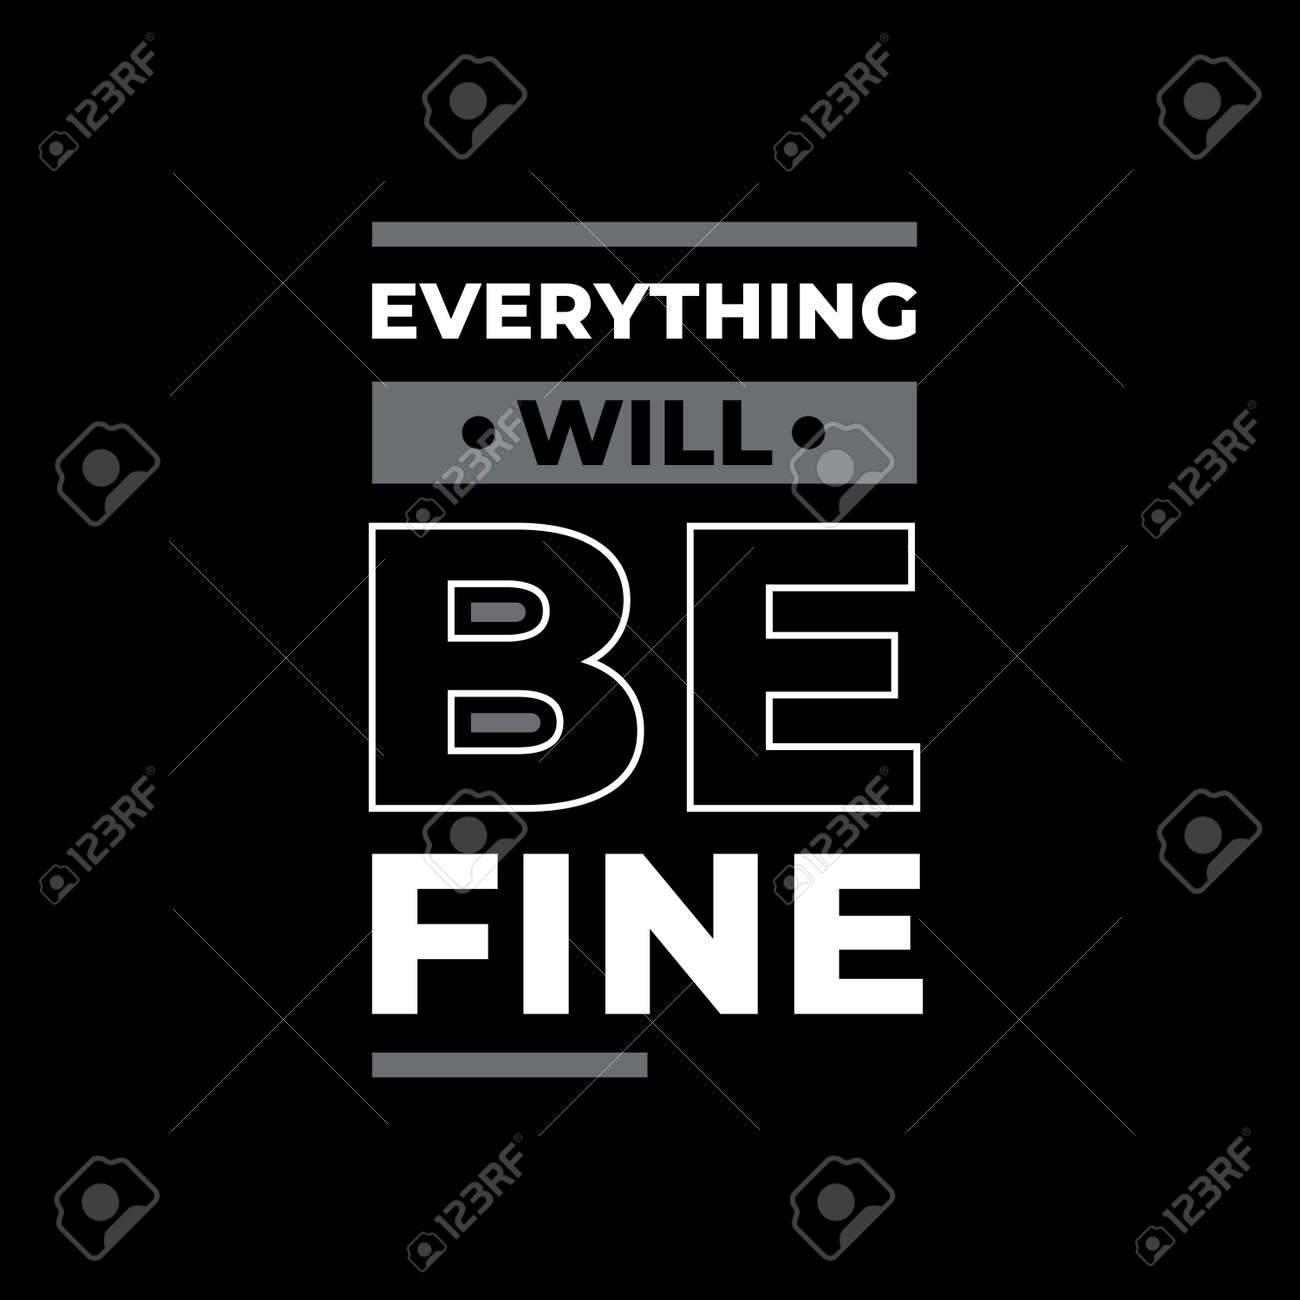 everything will be fine typography. white and grey combination on black background - 173153409